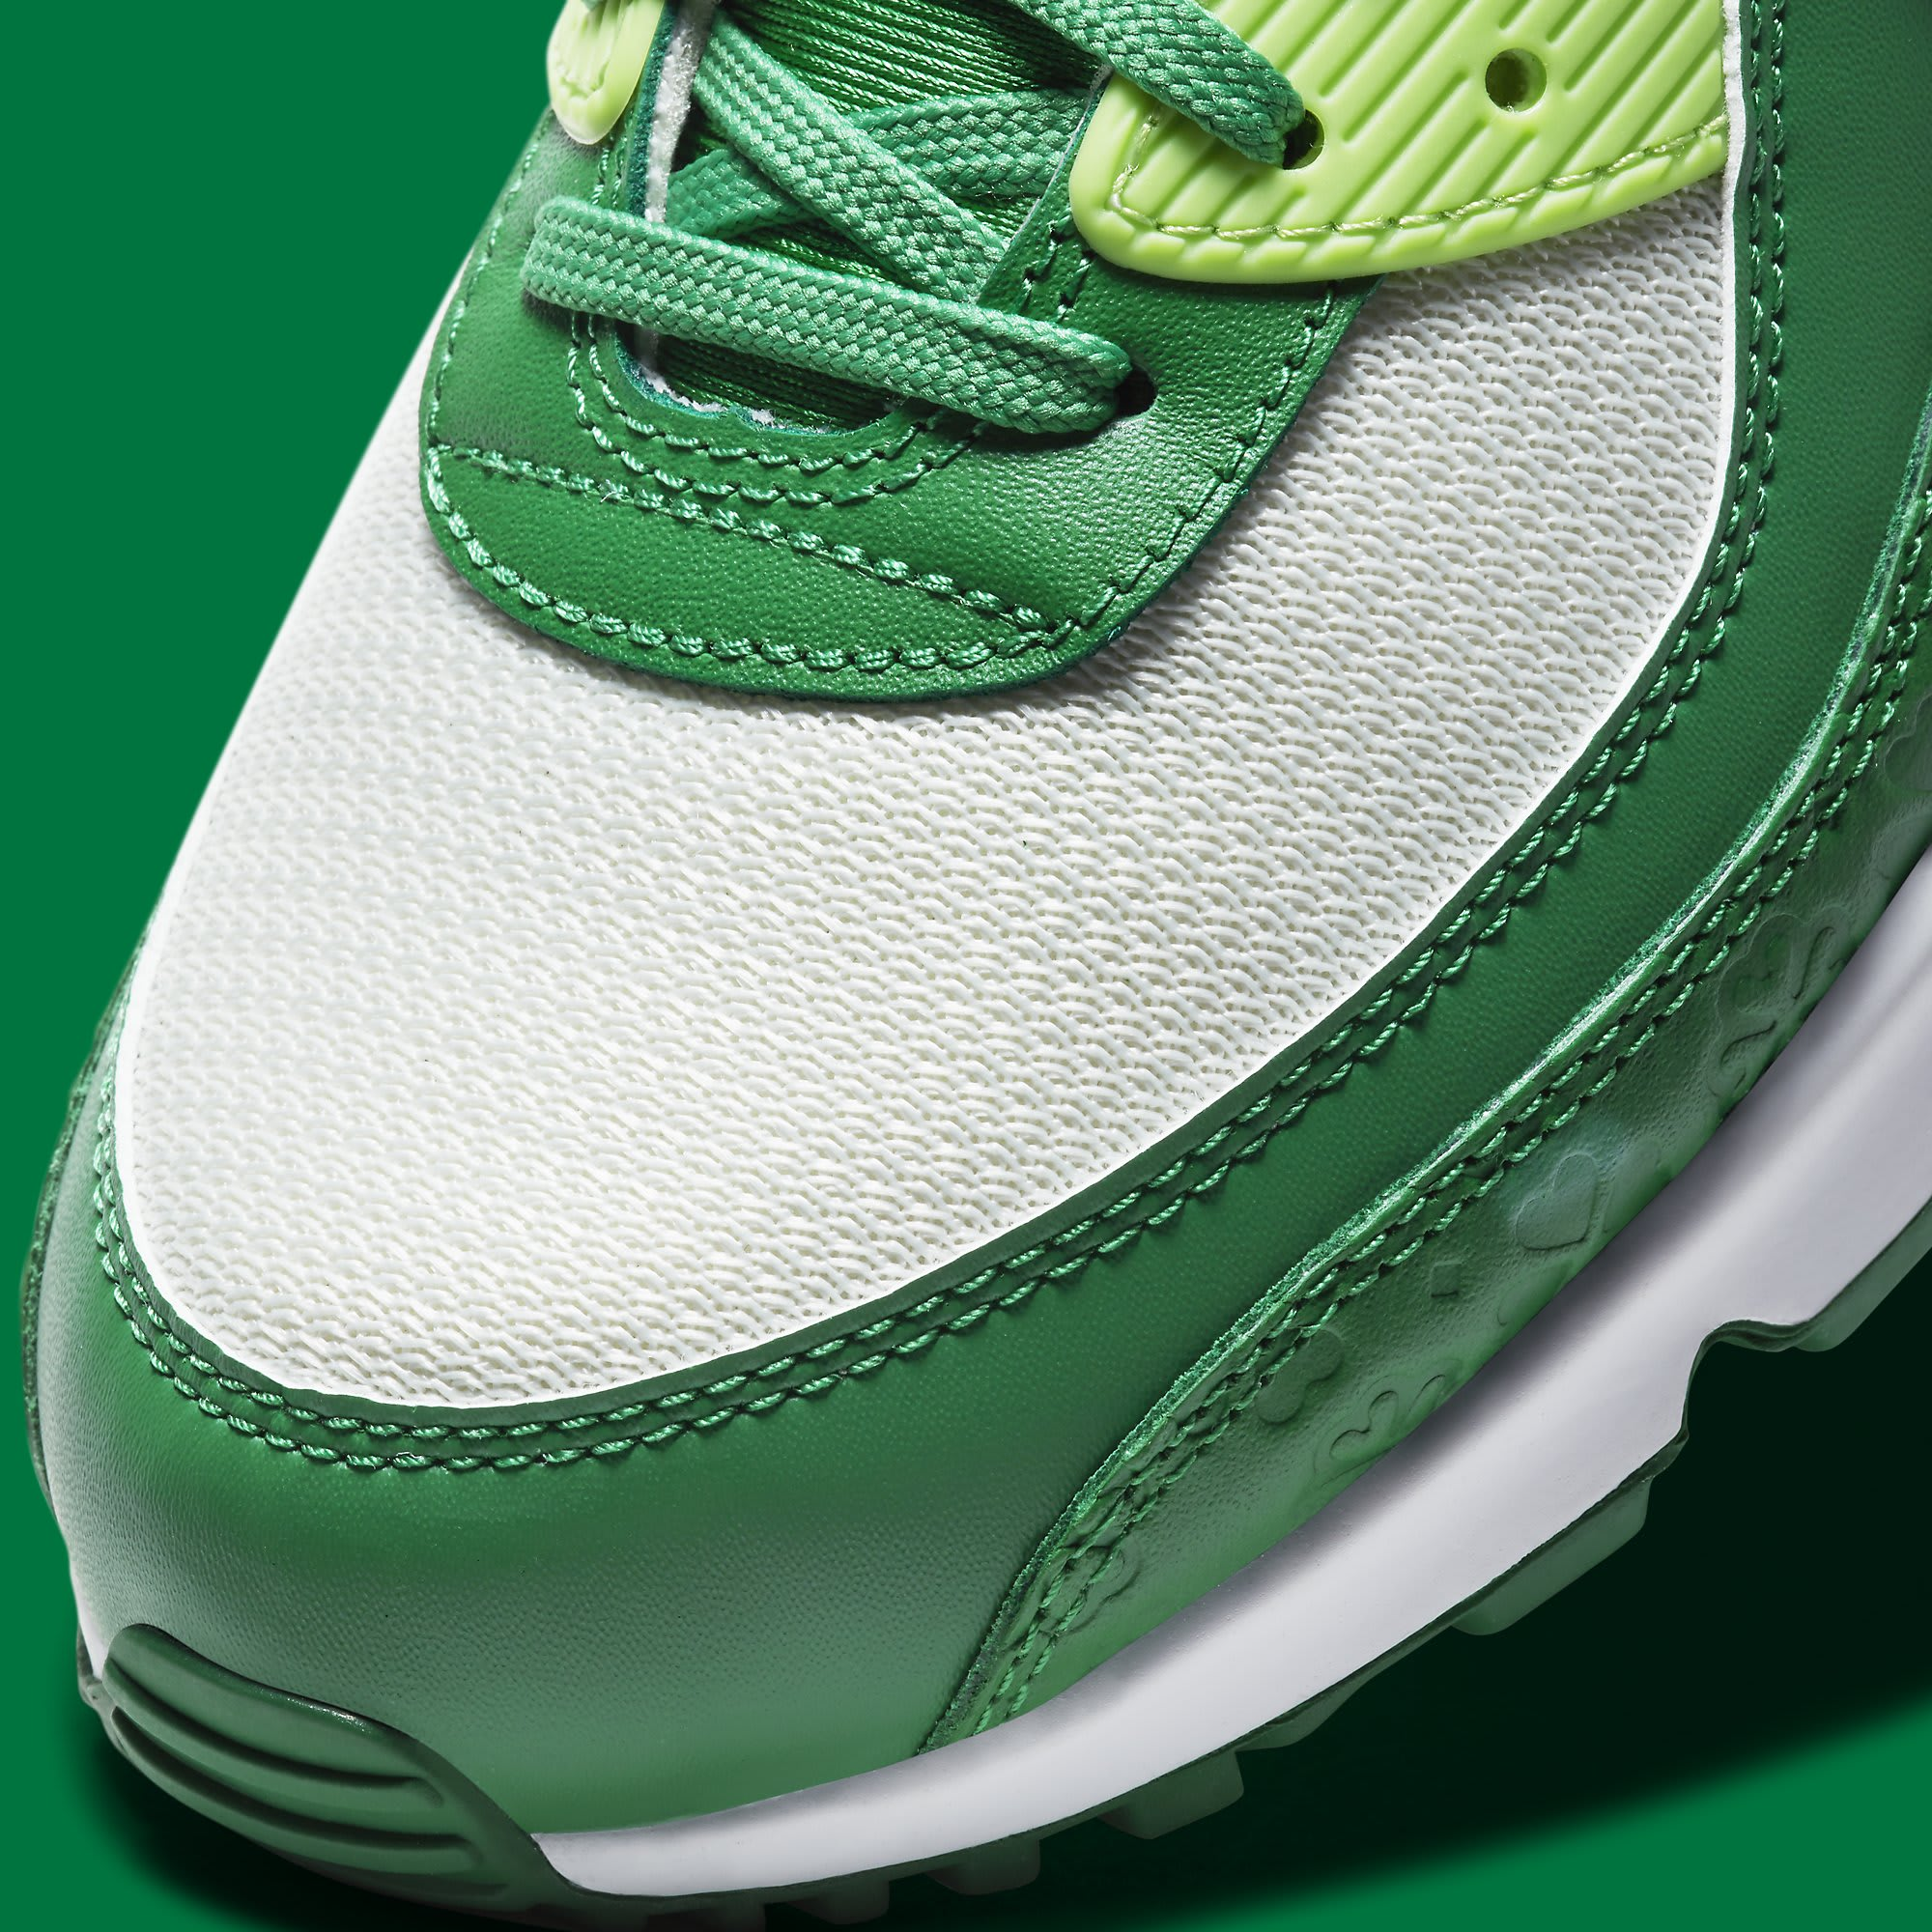 Nike Air Max 90 St. Patrick's Day Release Date DD8555-300 Toe Detail